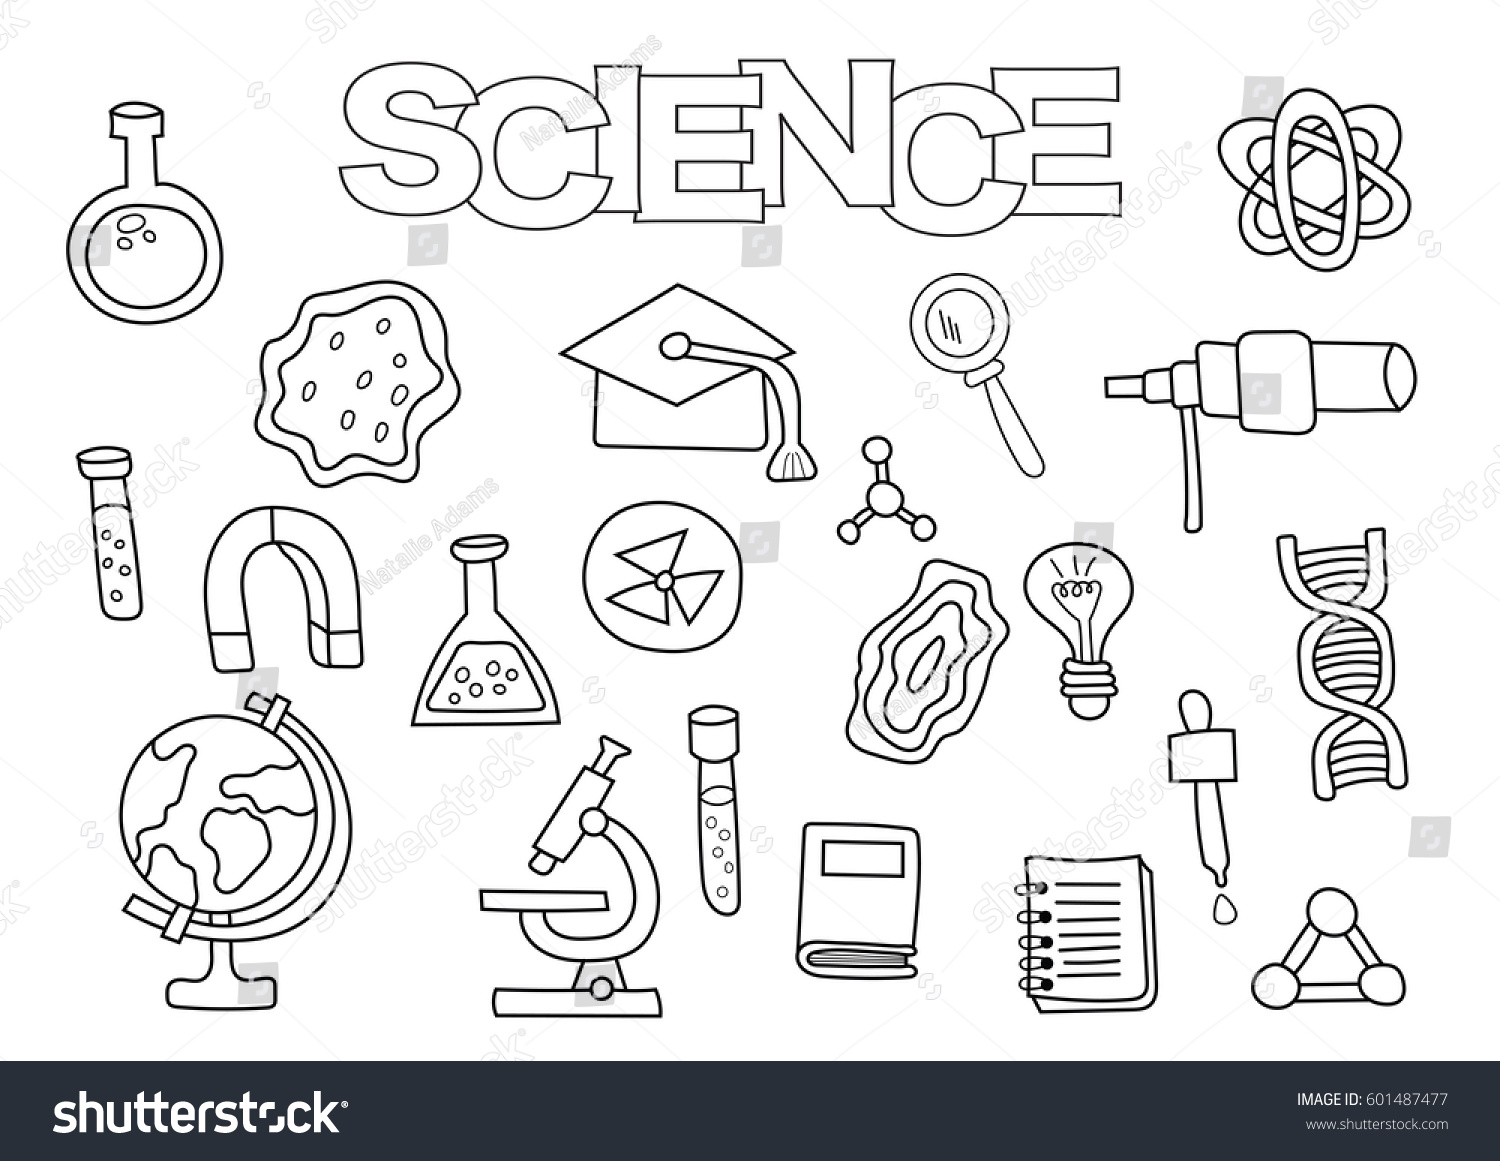 science elements hand drawn set coloring book template outline doodle elements vector illustration - Science Coloring Book